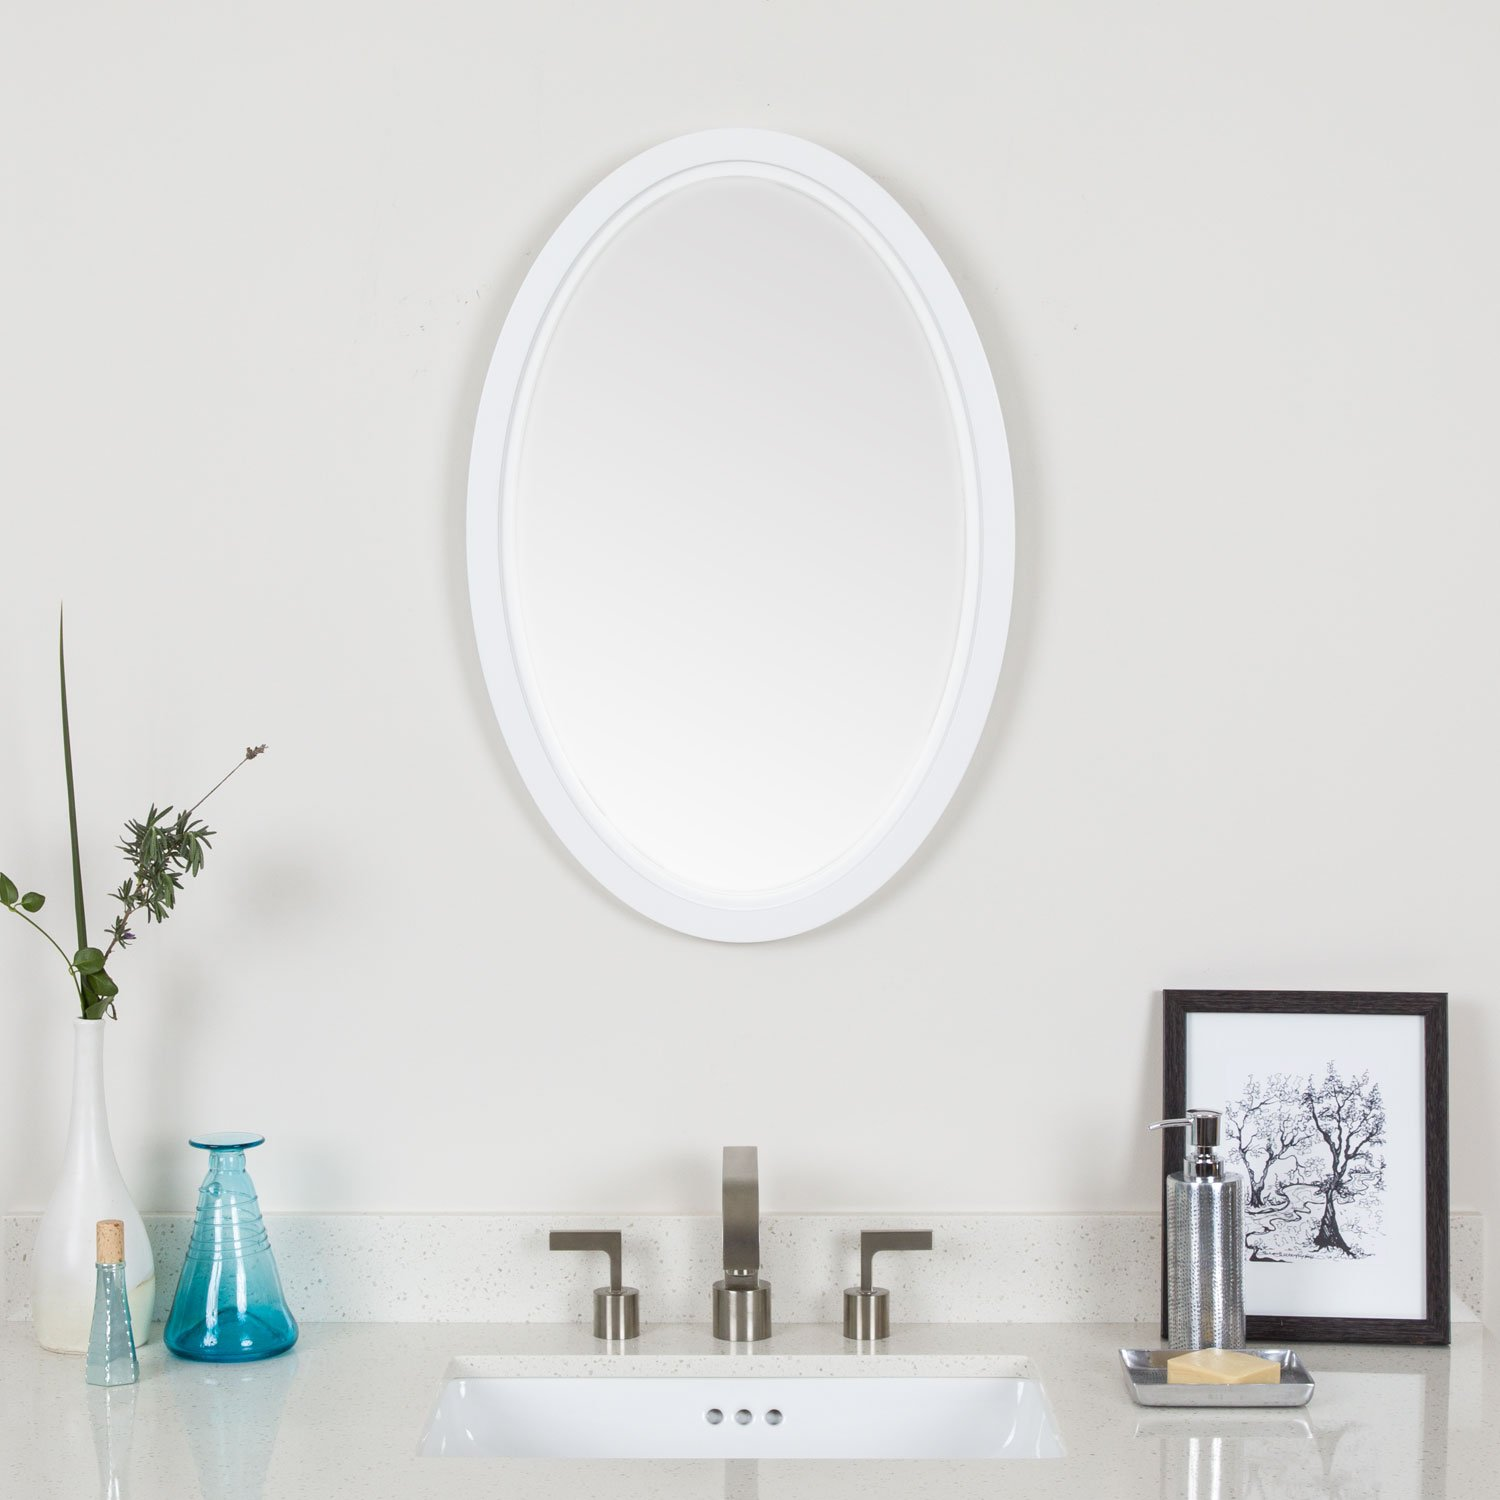 Maykke fiona 26 h x 18 w oval white wall decor bathroom - White wood framed bathroom mirrors ...